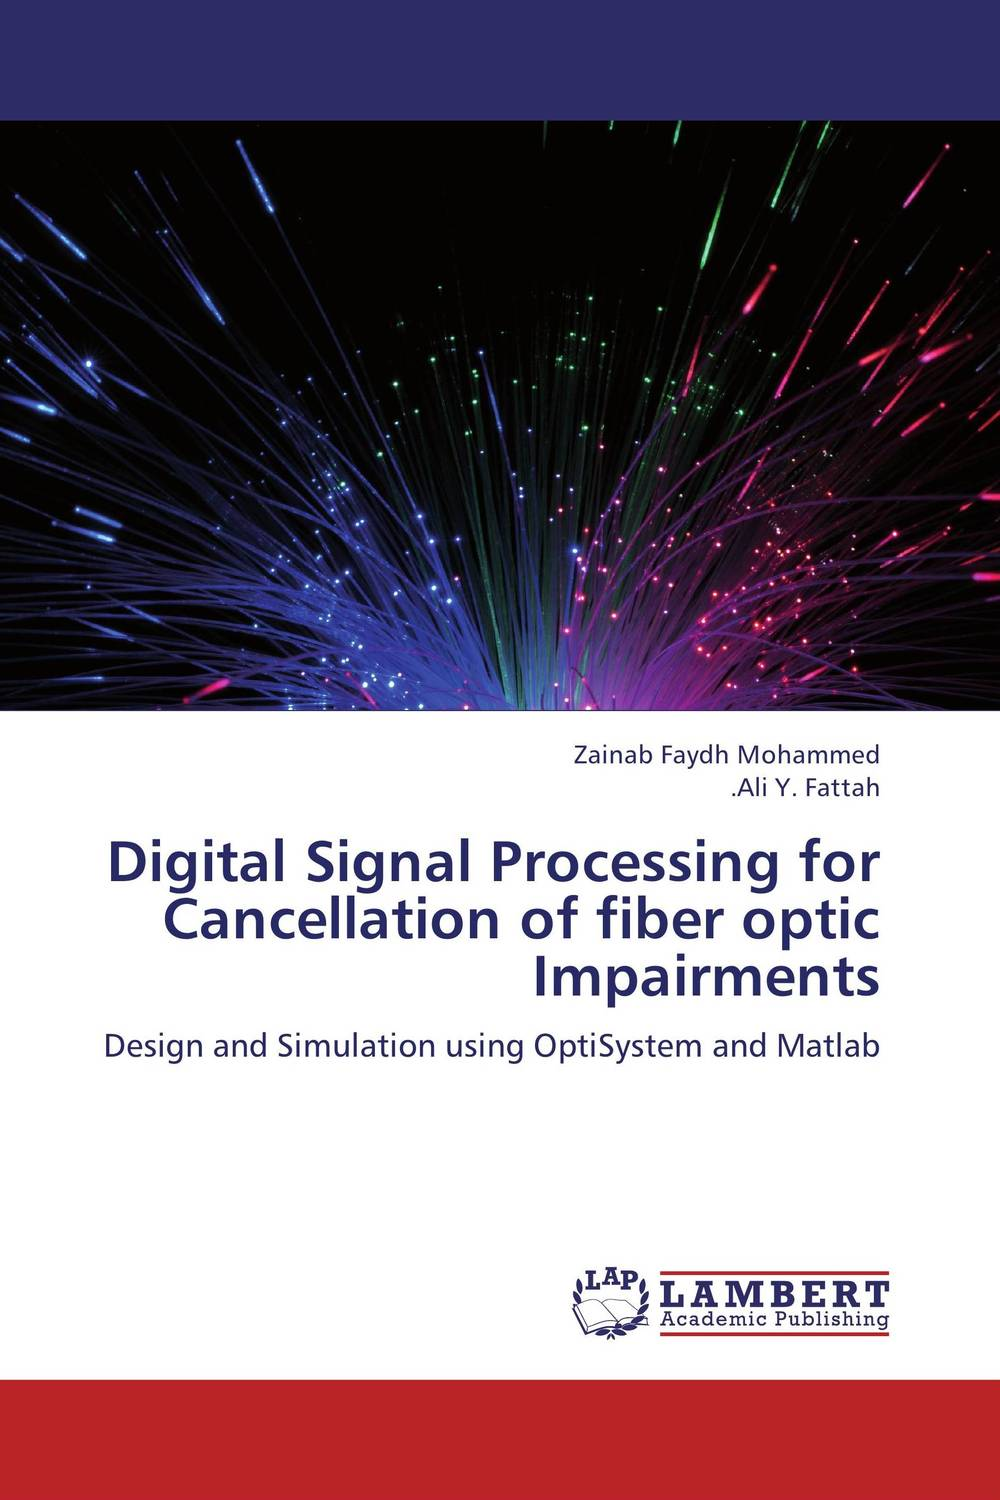 Digital Signal Processing for Cancellation of fiber optic Impairments dag stranneby digital signal processing and applications